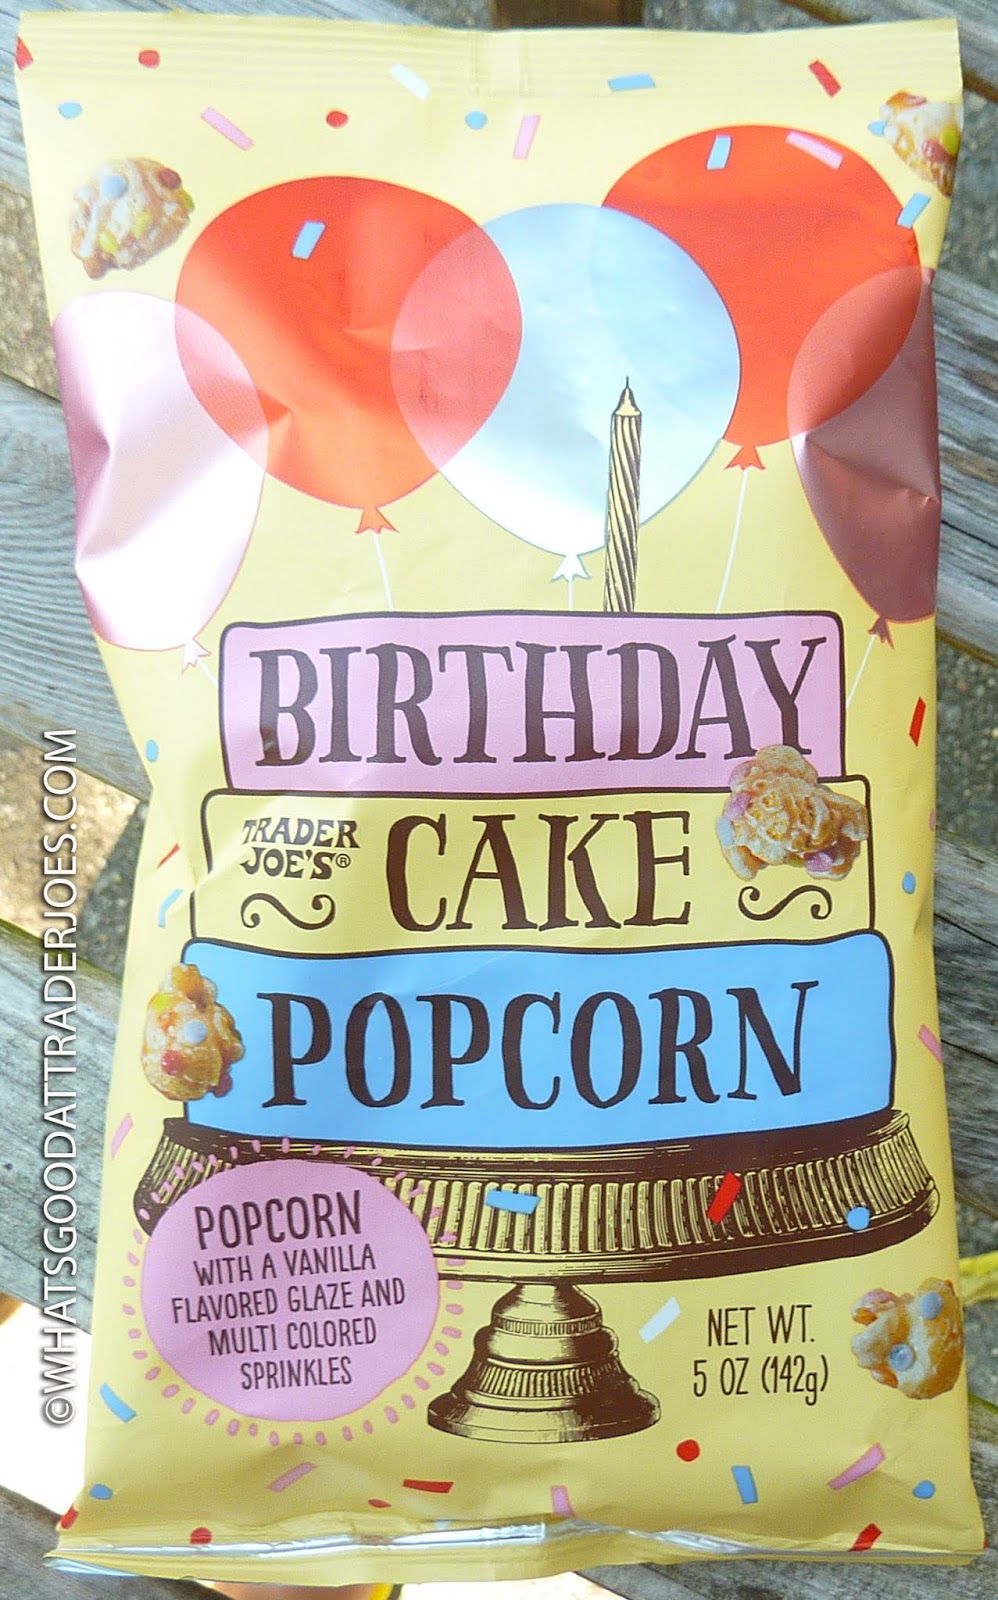 Marvelous Whats Good At Trader Joes Trader Joes Birthday Cake Popcorn Funny Birthday Cards Online Fluifree Goldxyz